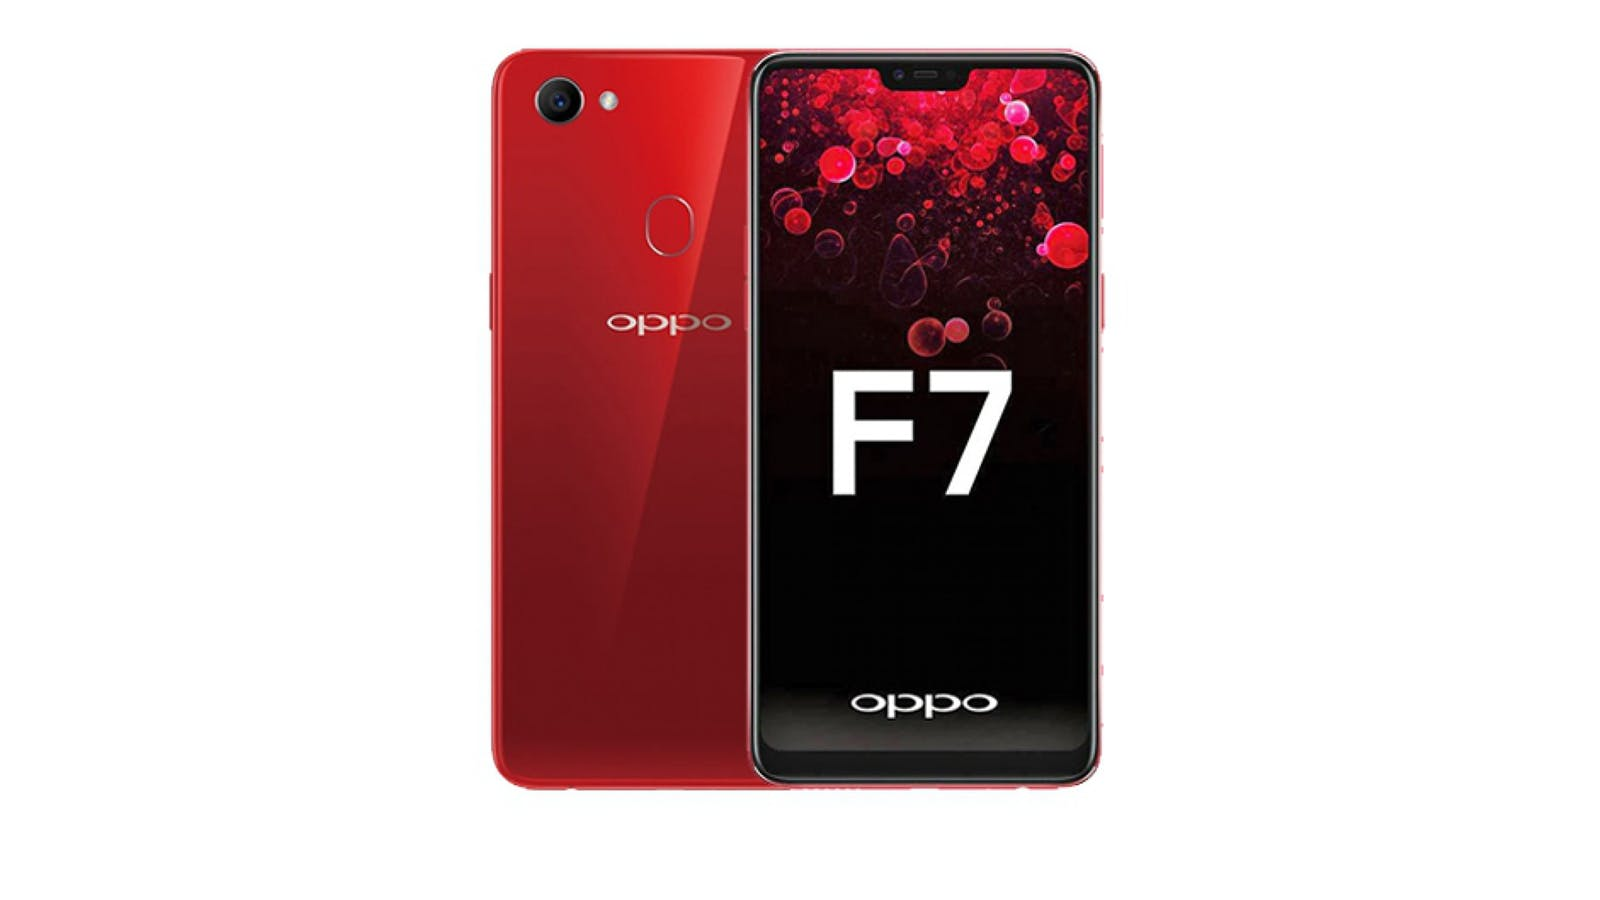 OPPO F7 CPH1819 SCATTER FIRMWARE LATEST VERSION - WELCOME TO